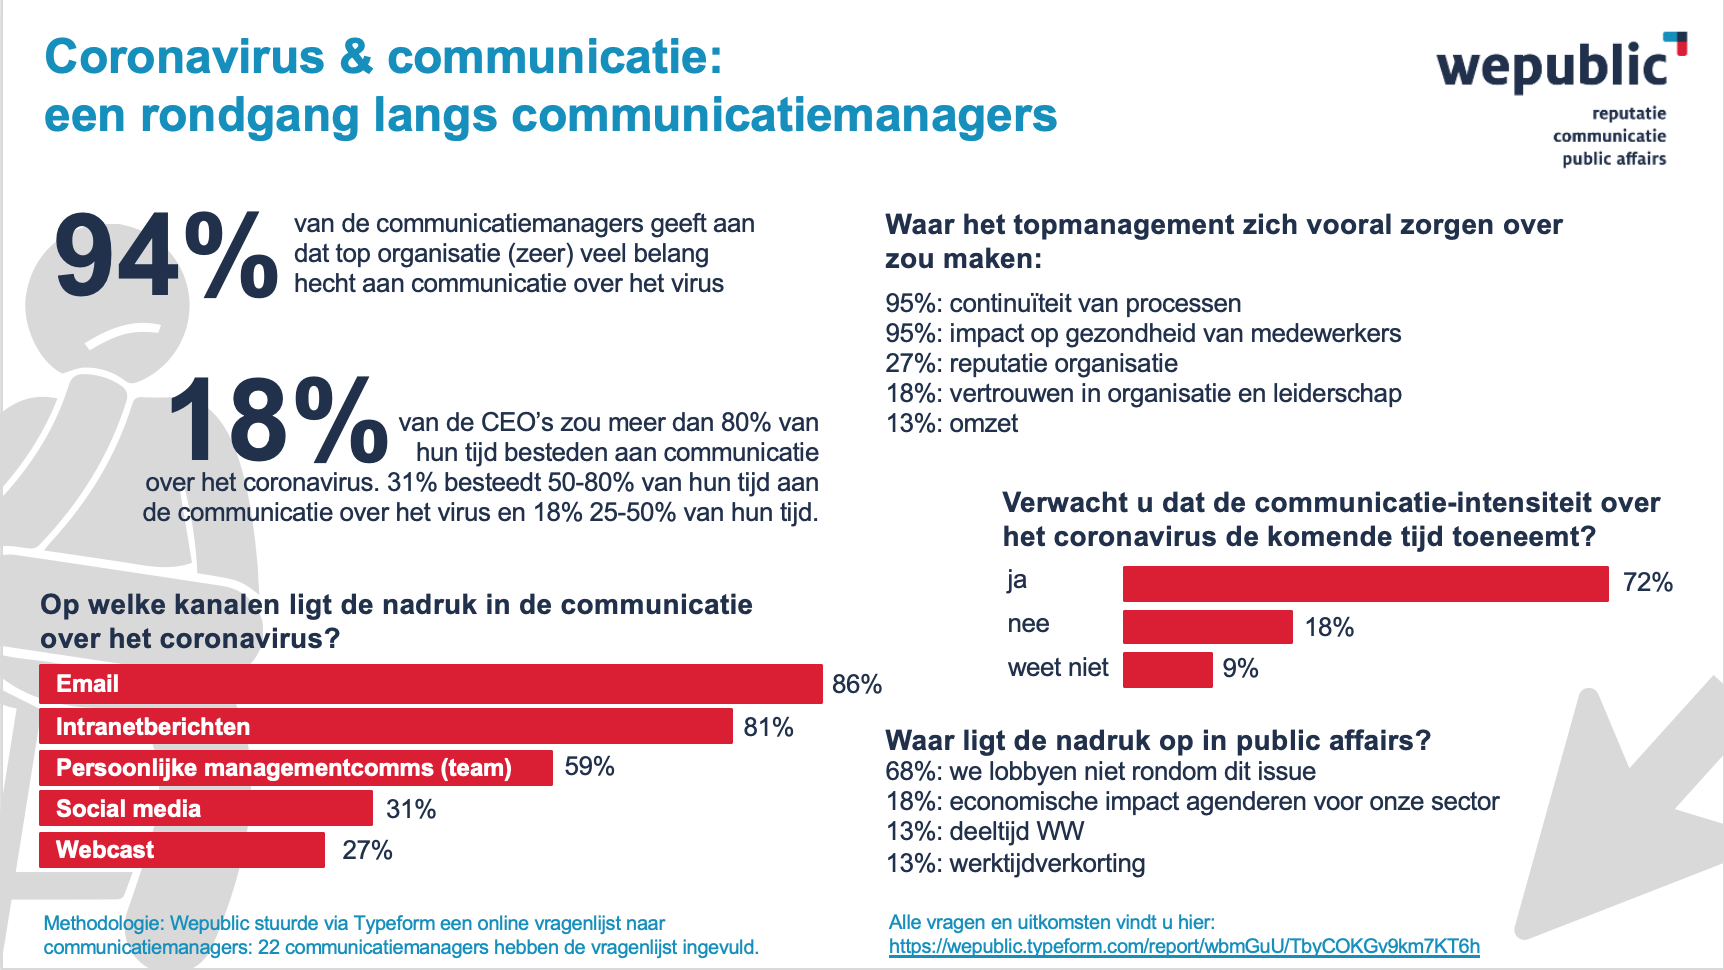 Coronavirus en communicatie